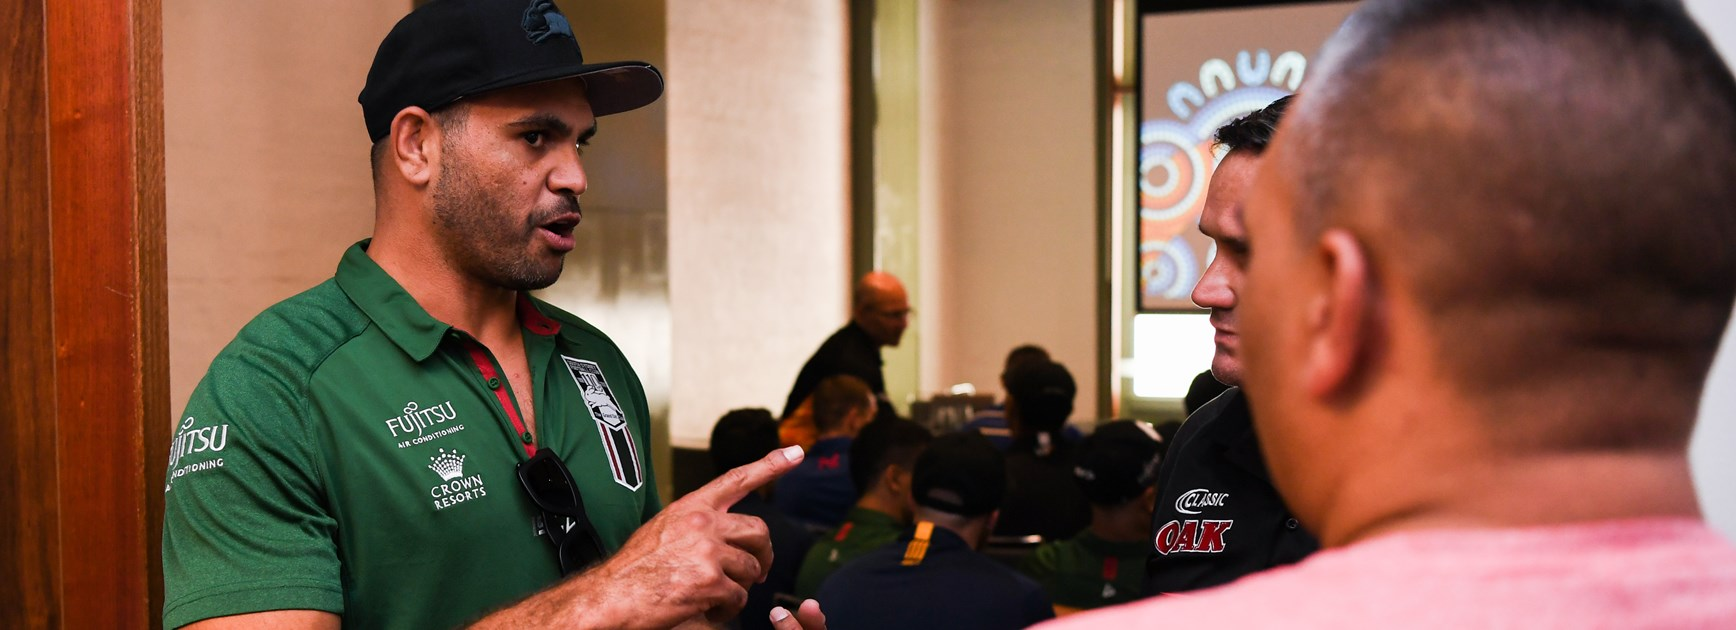 Greg Inglis at the Festival of Indigenous Rugby League.